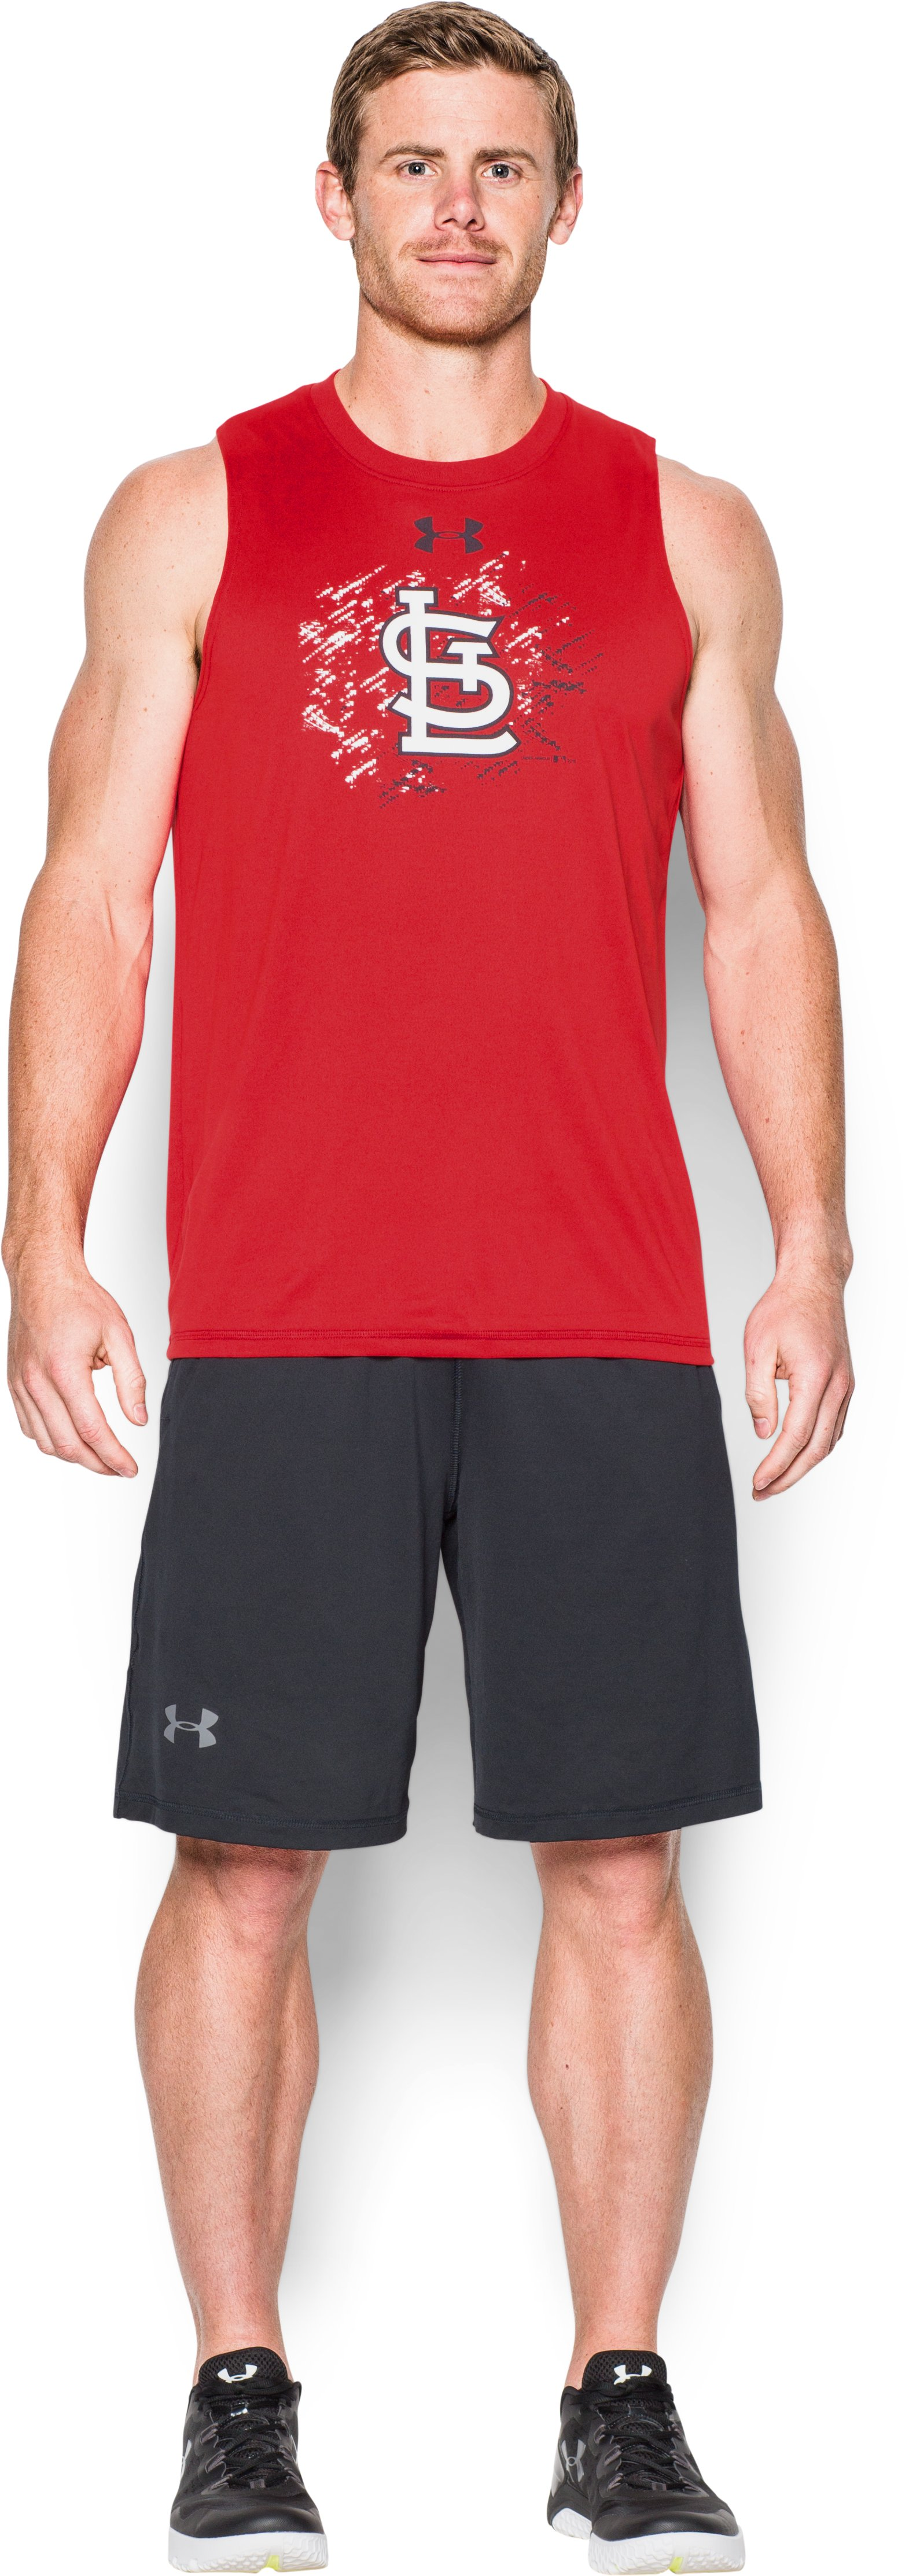 Men's St. Louis Cardinals Tech™ Tank, Red, zoomed image